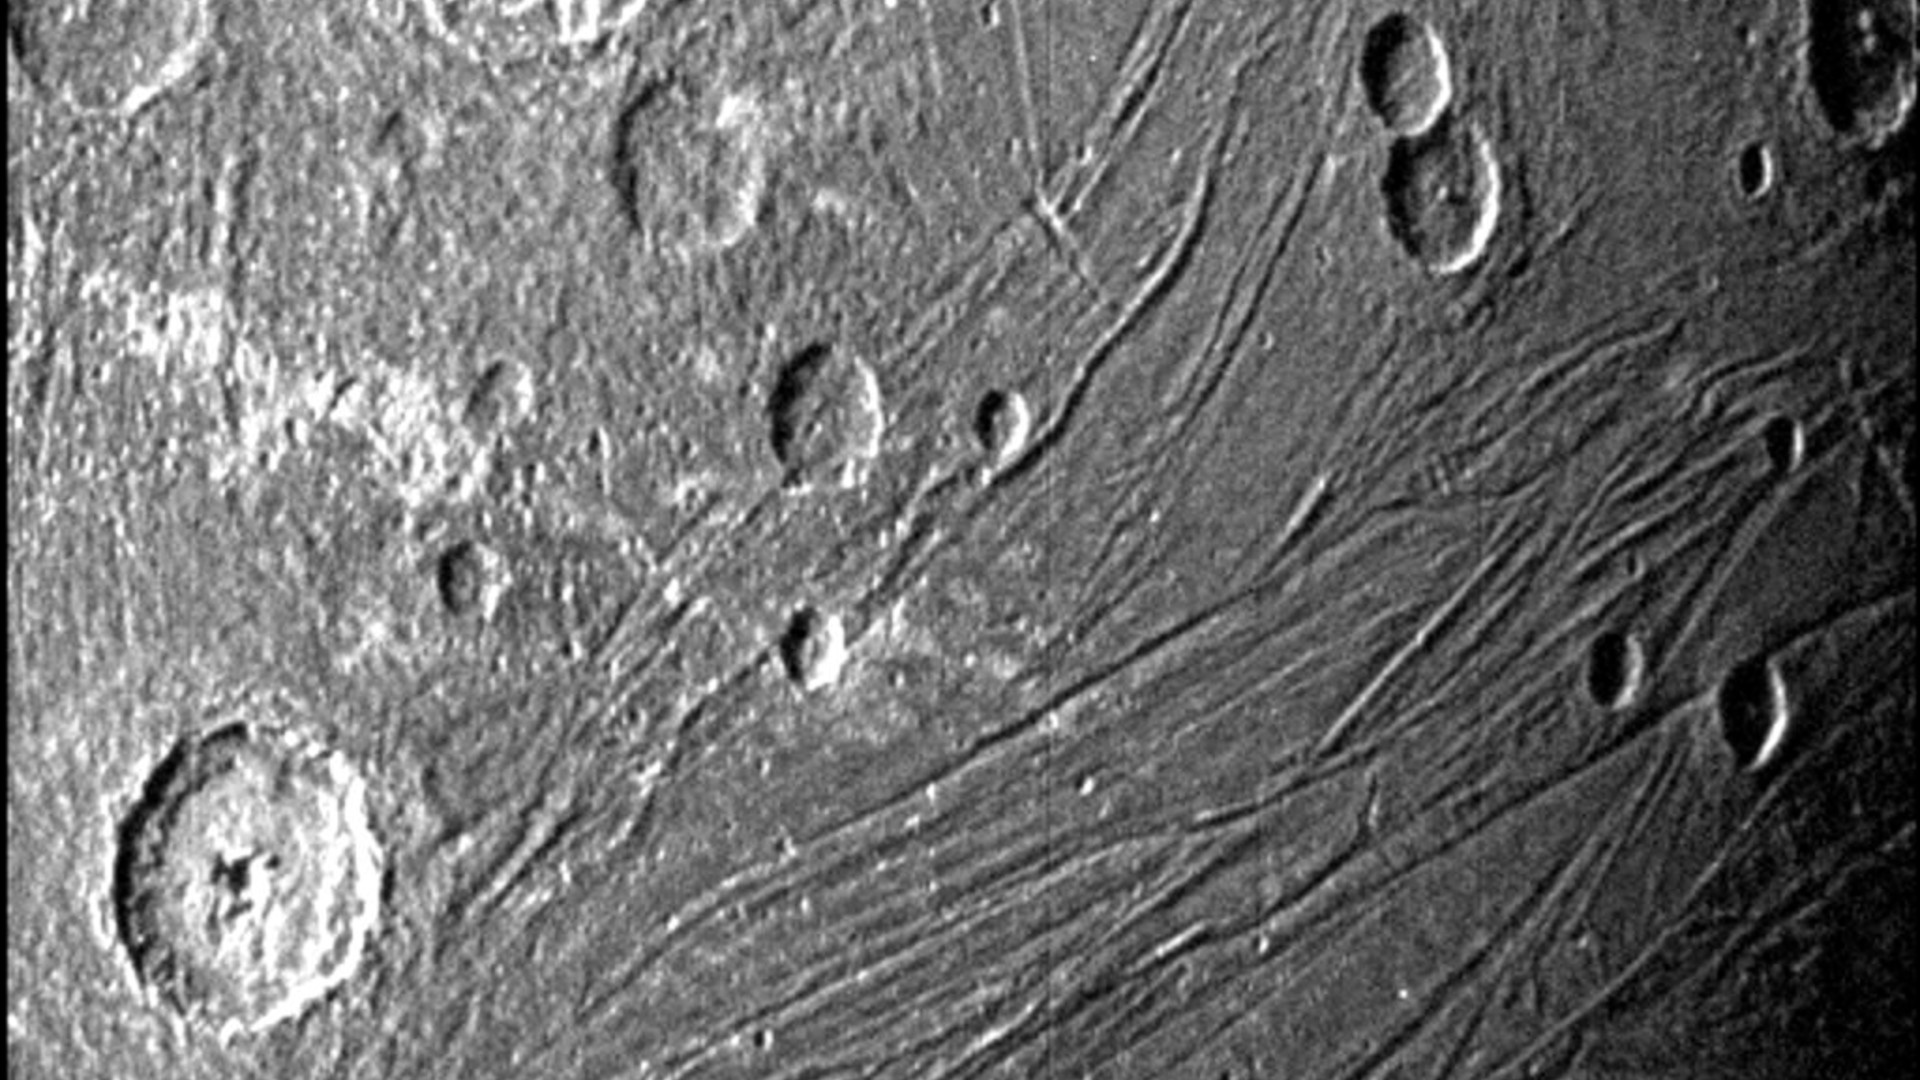 This June 7, 2021 image made available by NASA shows the dark side of the Jovian moon Ganymede as the Juno spacecraft flies by. (NASA/JPL-Caltech/SwRI via AP)